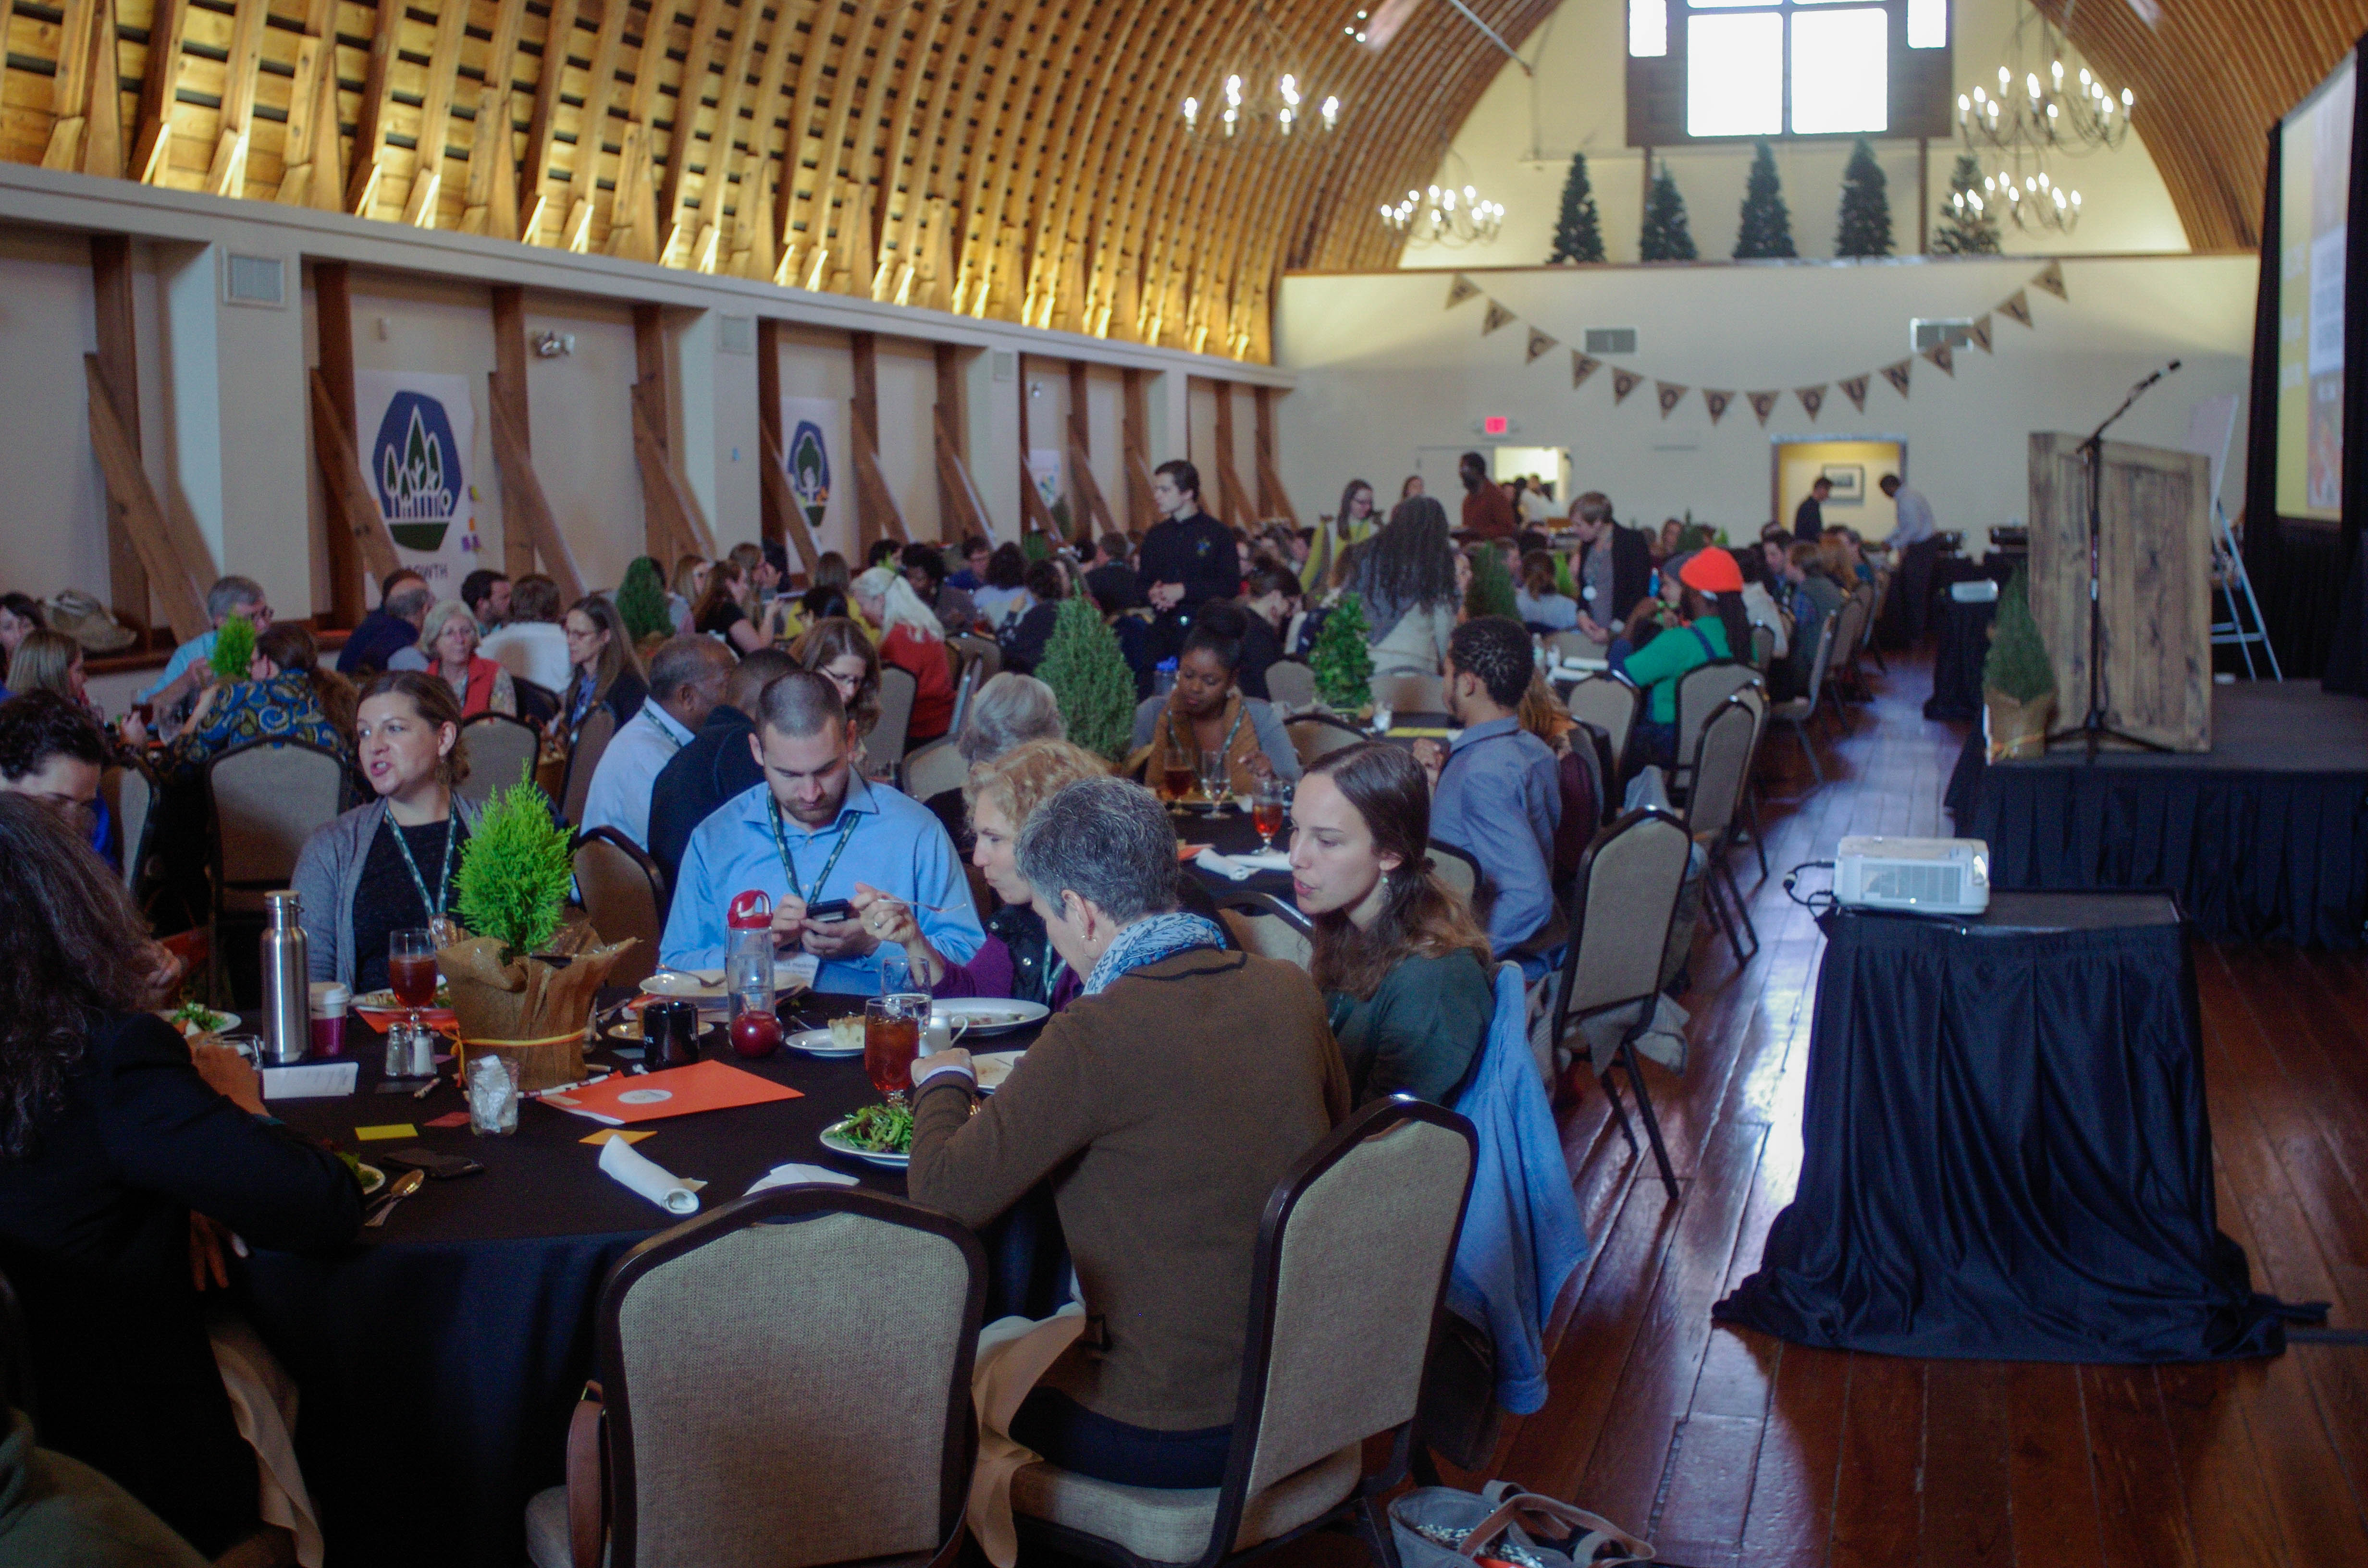 The Statewide Food Council Gathering in November 2017.